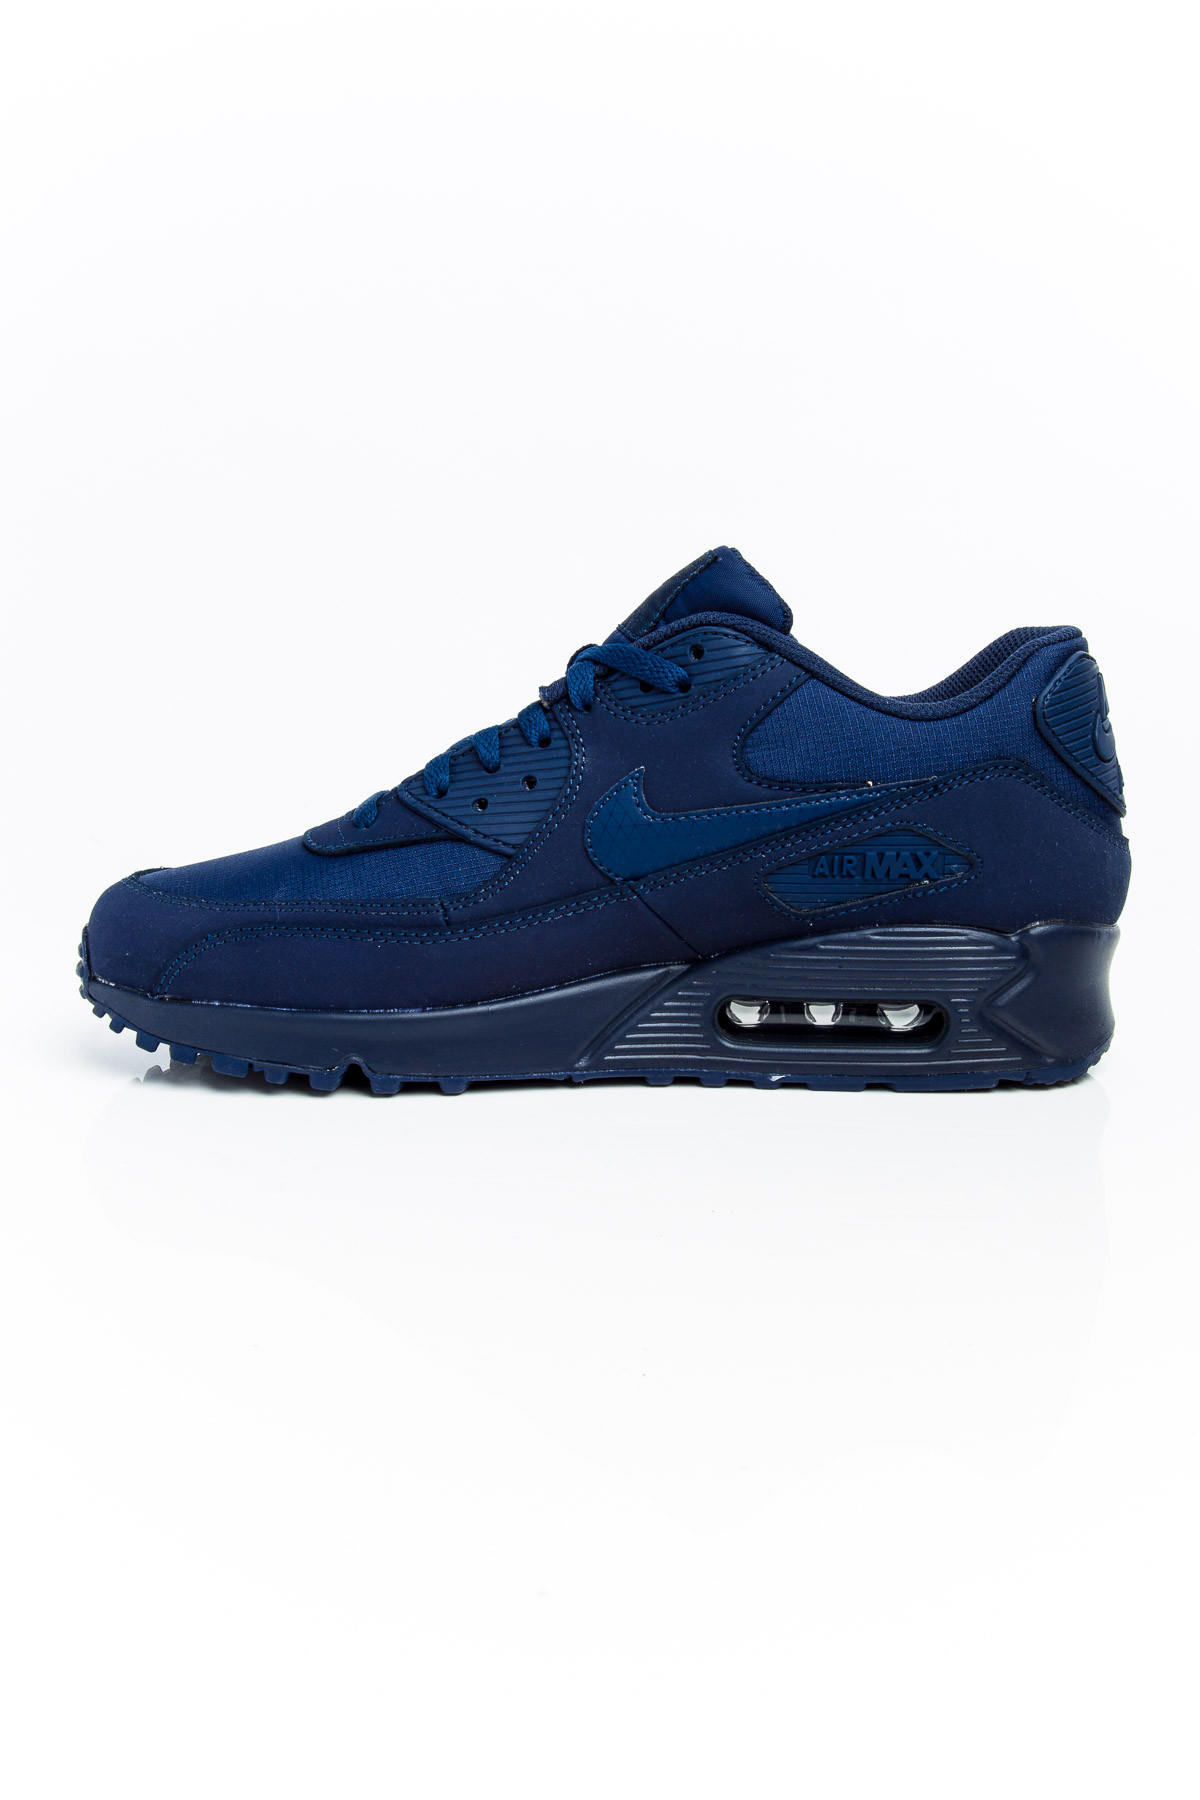 Nike Air Max 90 Essentail Midnight Navy from Probus  3c6ec44839